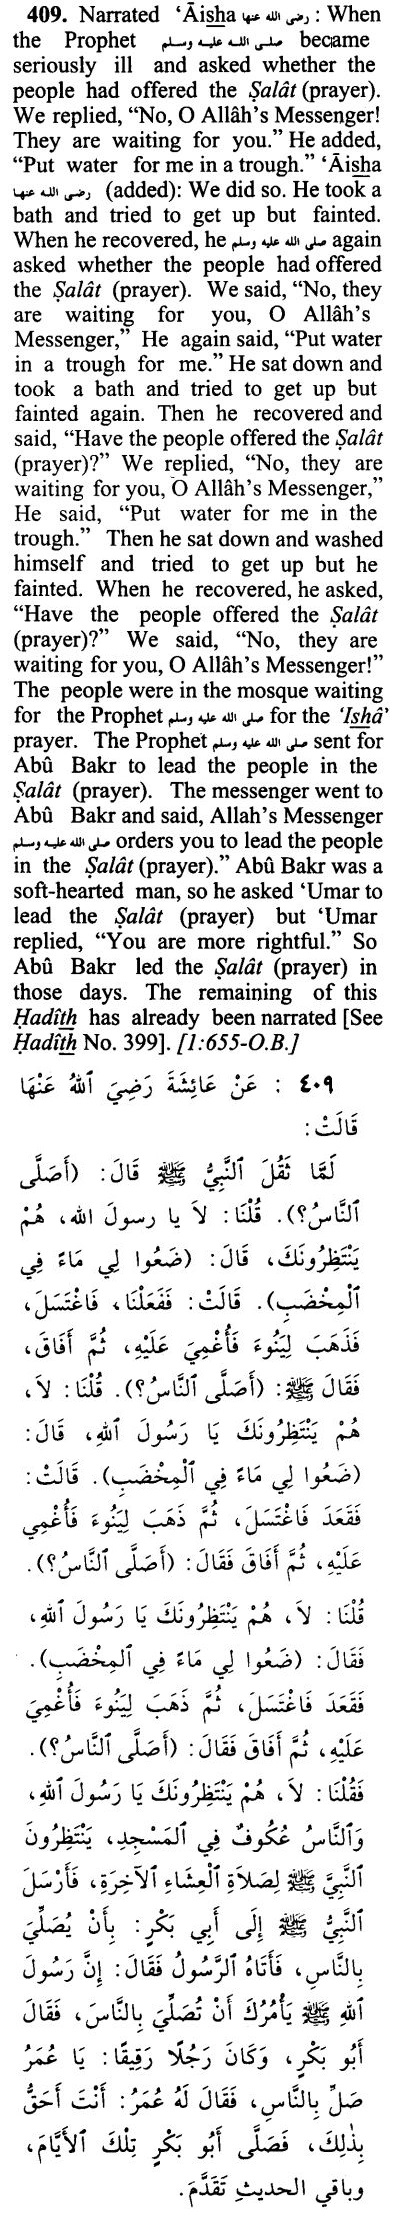 Hadith on Abu Bakr Leading Prayers